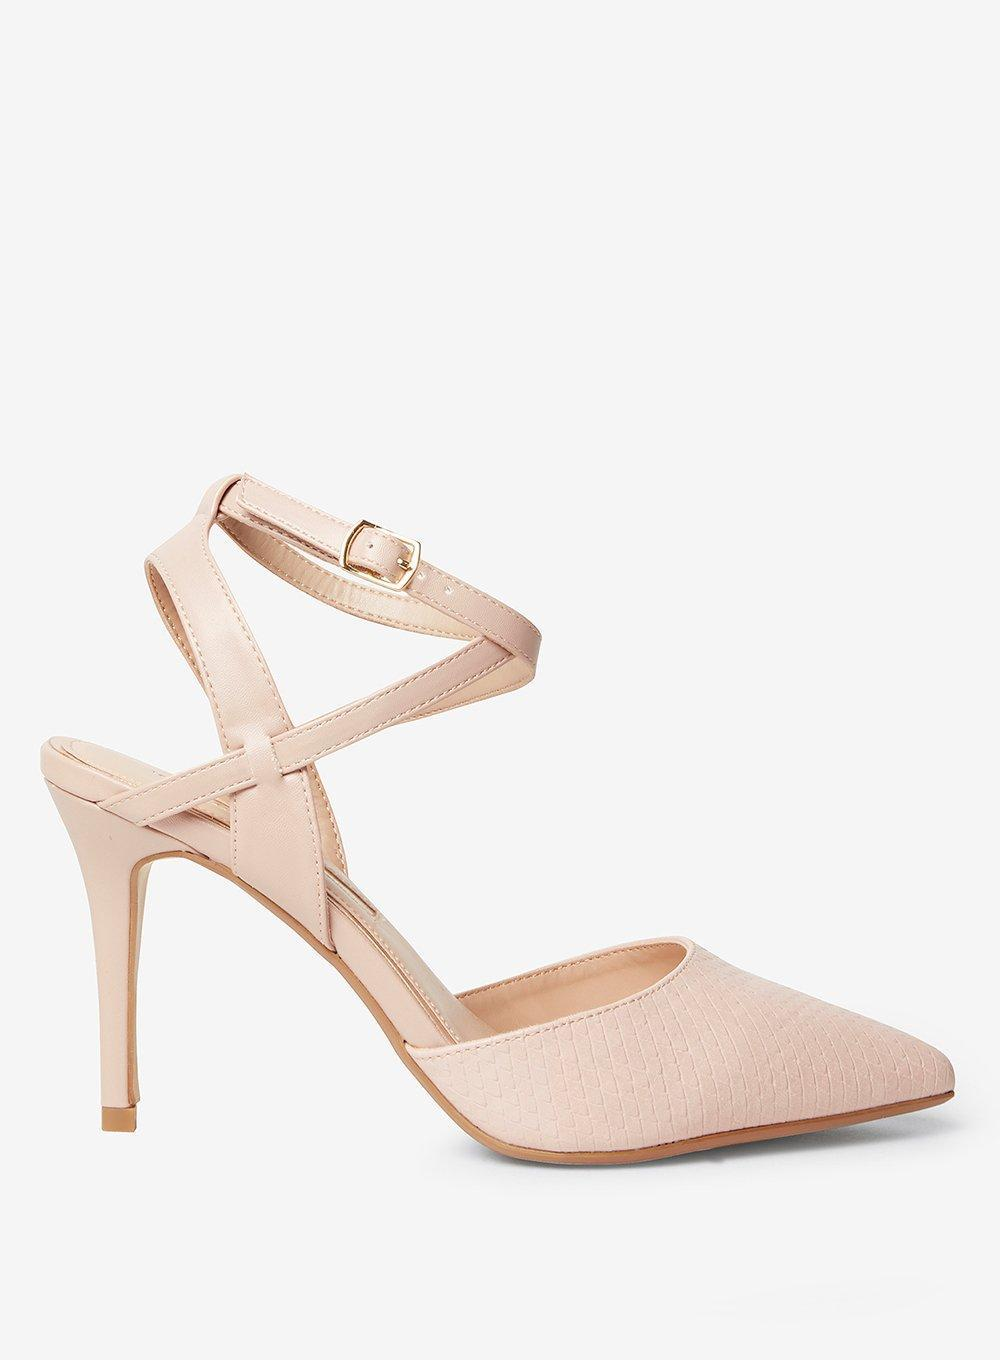 2a33c38fda069 Lyst - Dorothy Perkins Nude Pu Glamorous Court Shoes in White